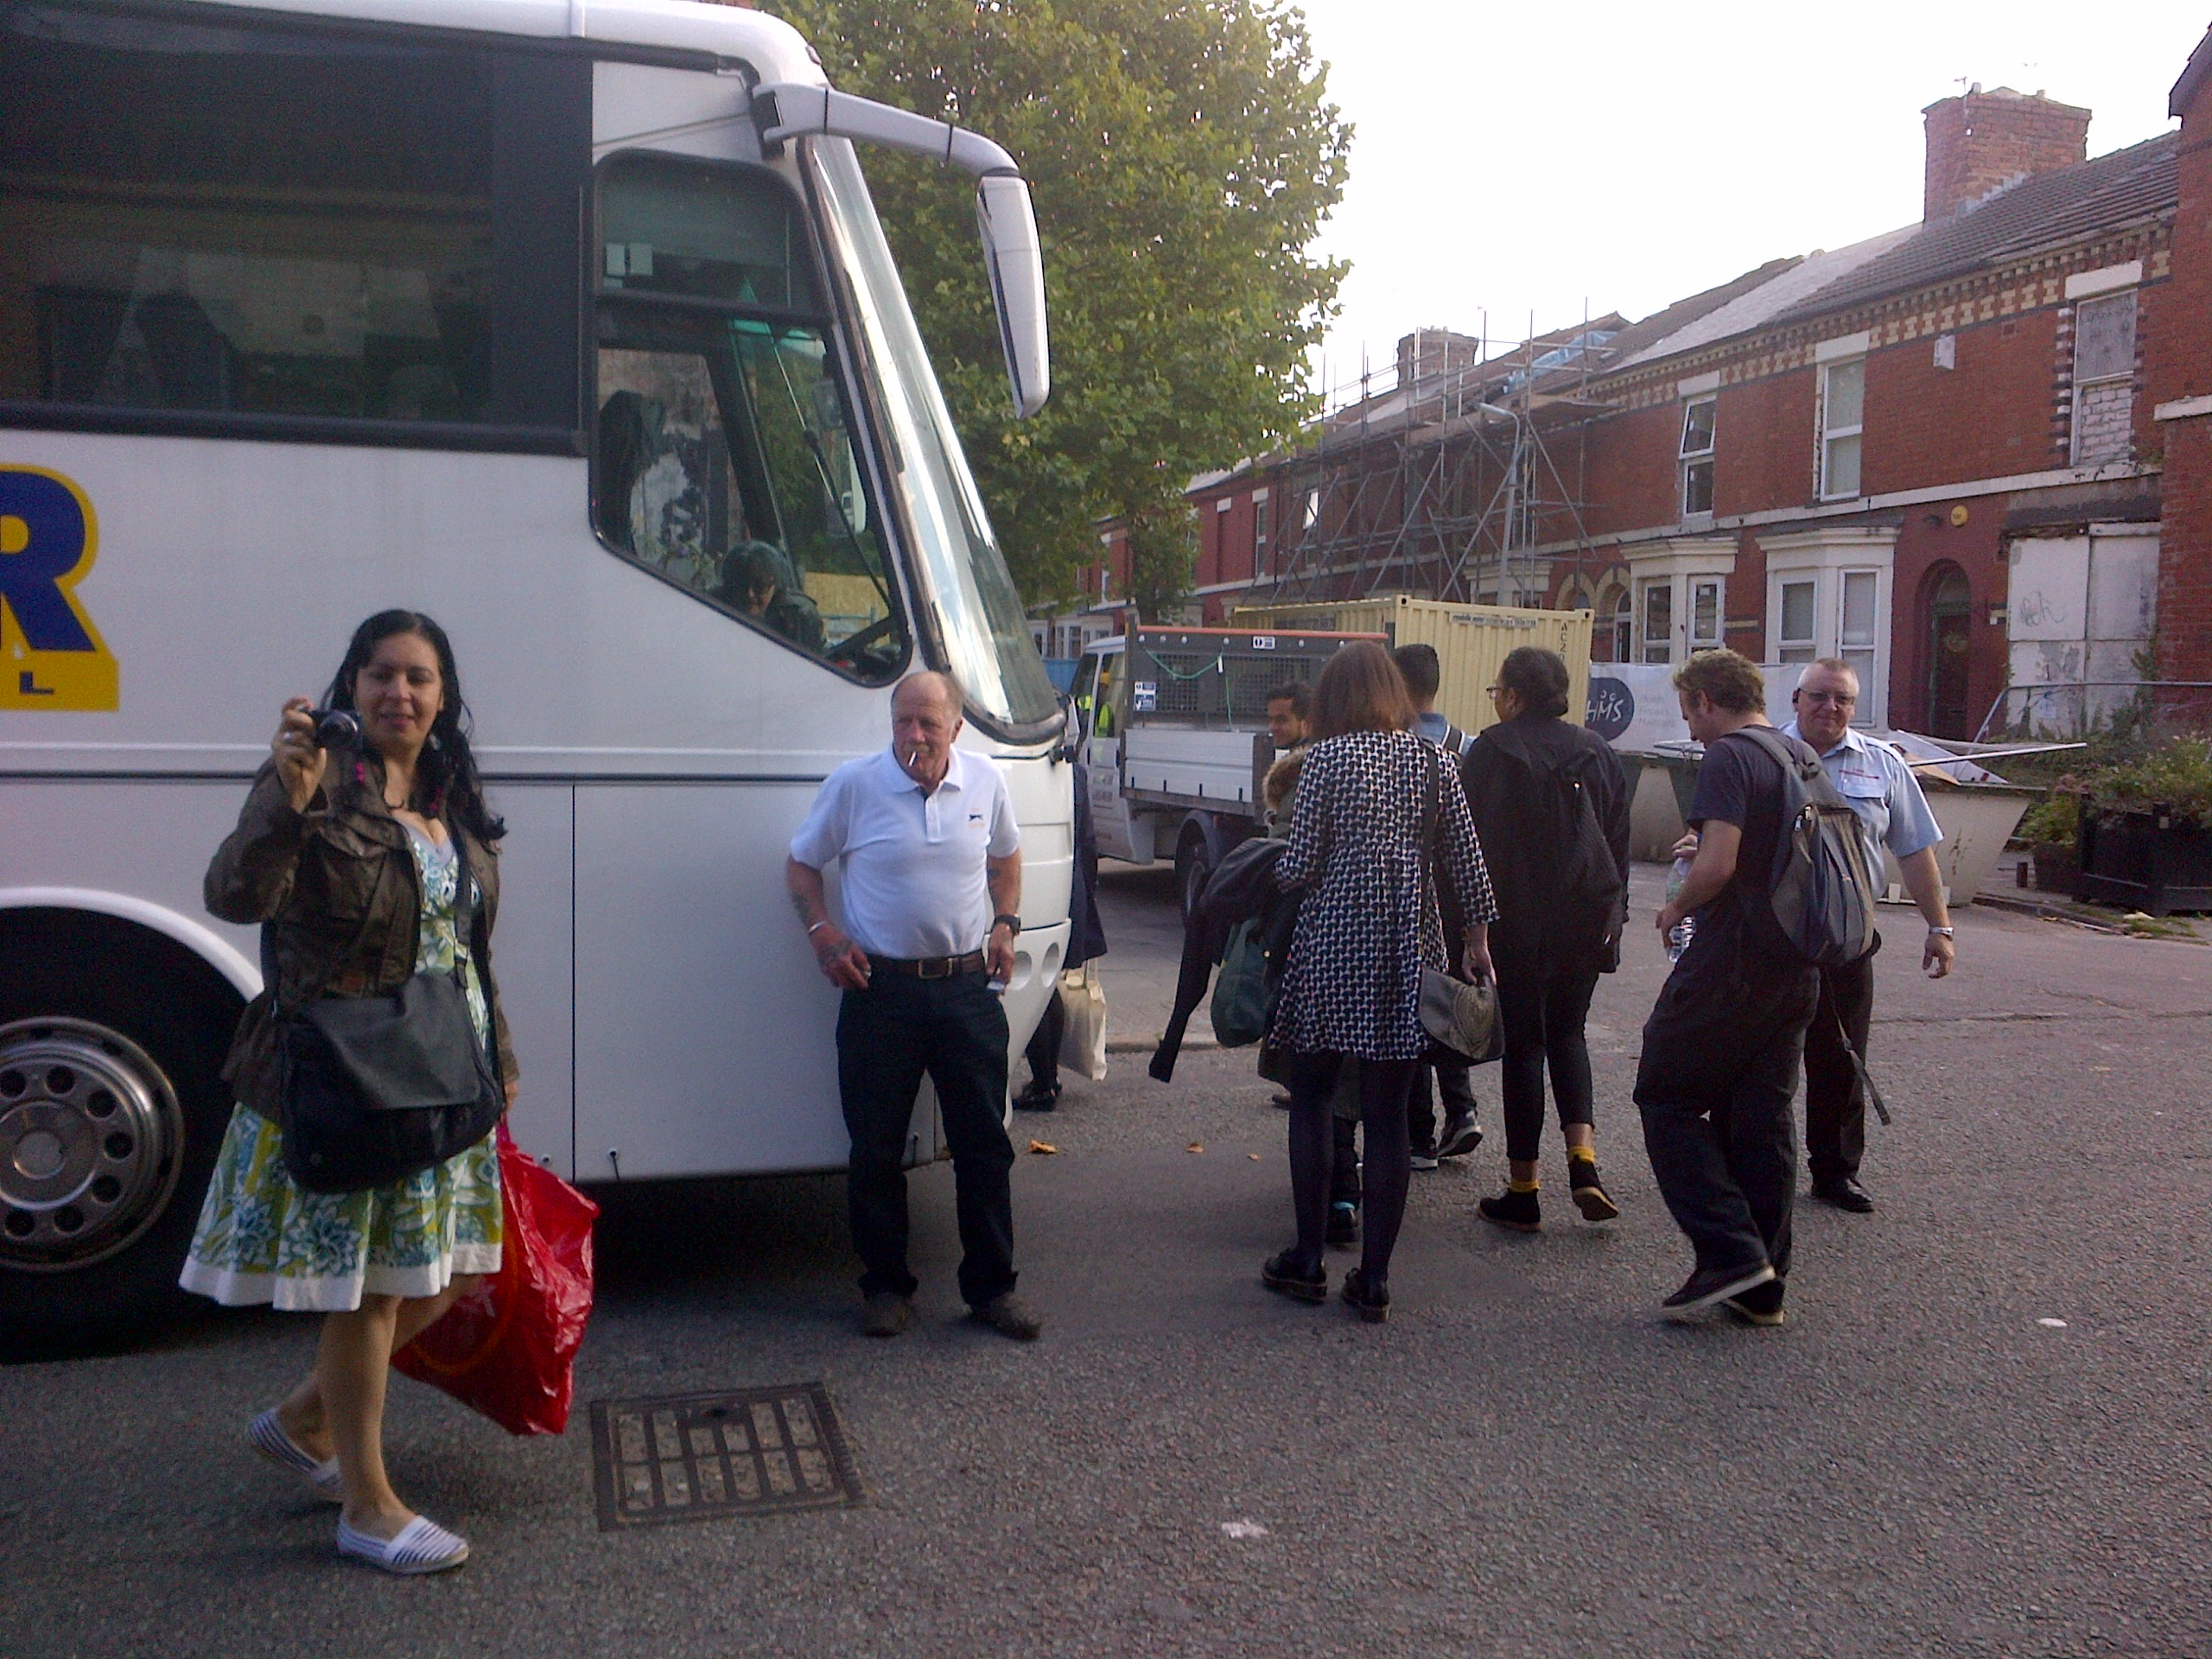 Granby Community Land Trust residents and supporters prepare to board the coach to the Turner Prize 2015 party